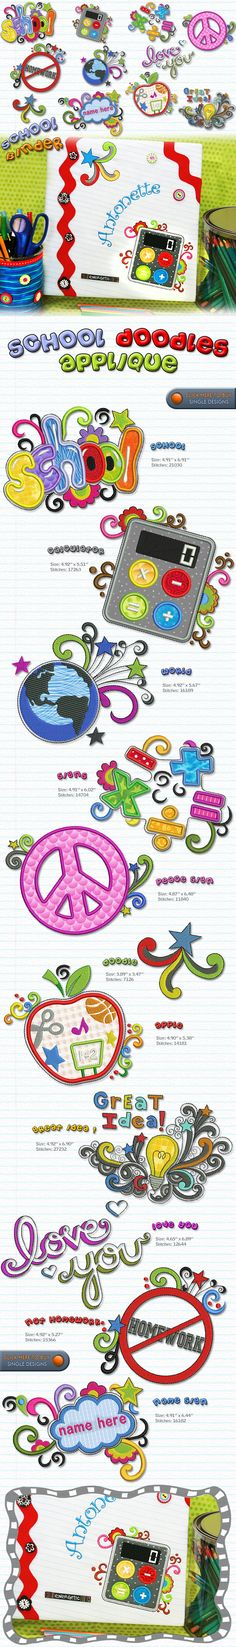 School Doodles 5X7 Embroidery Designs Free Embroidery Design Patterns Applique